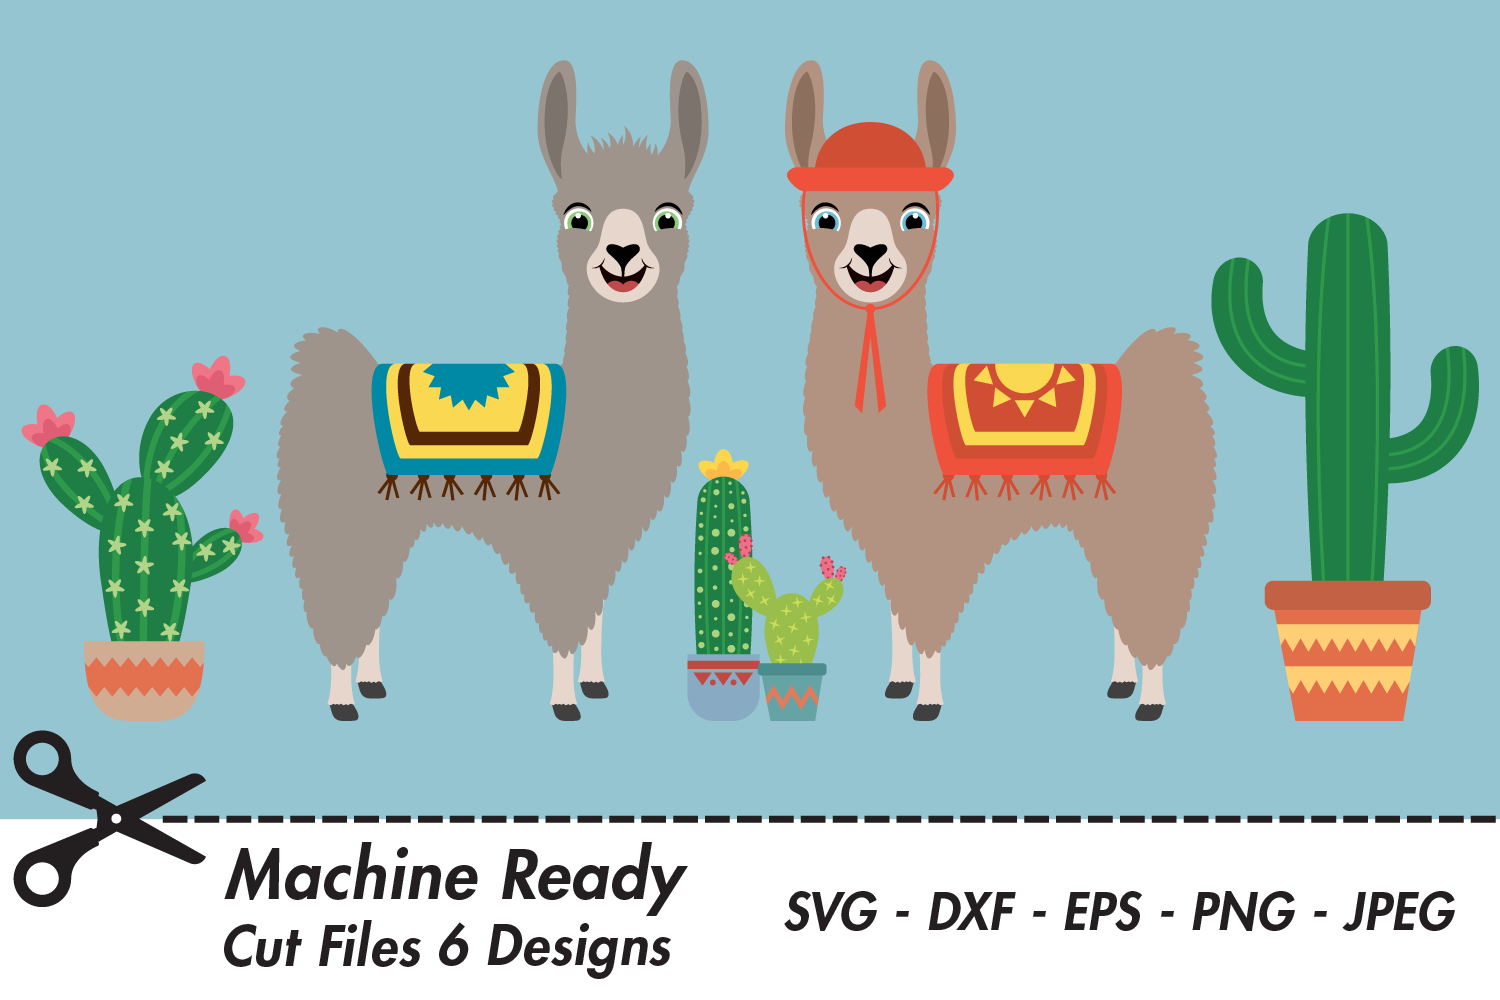 Download Free Cute Boy Llamas With Cacti Graphic By Captaincreative Creative Fabrica for Cricut Explore, Silhouette and other cutting machines.